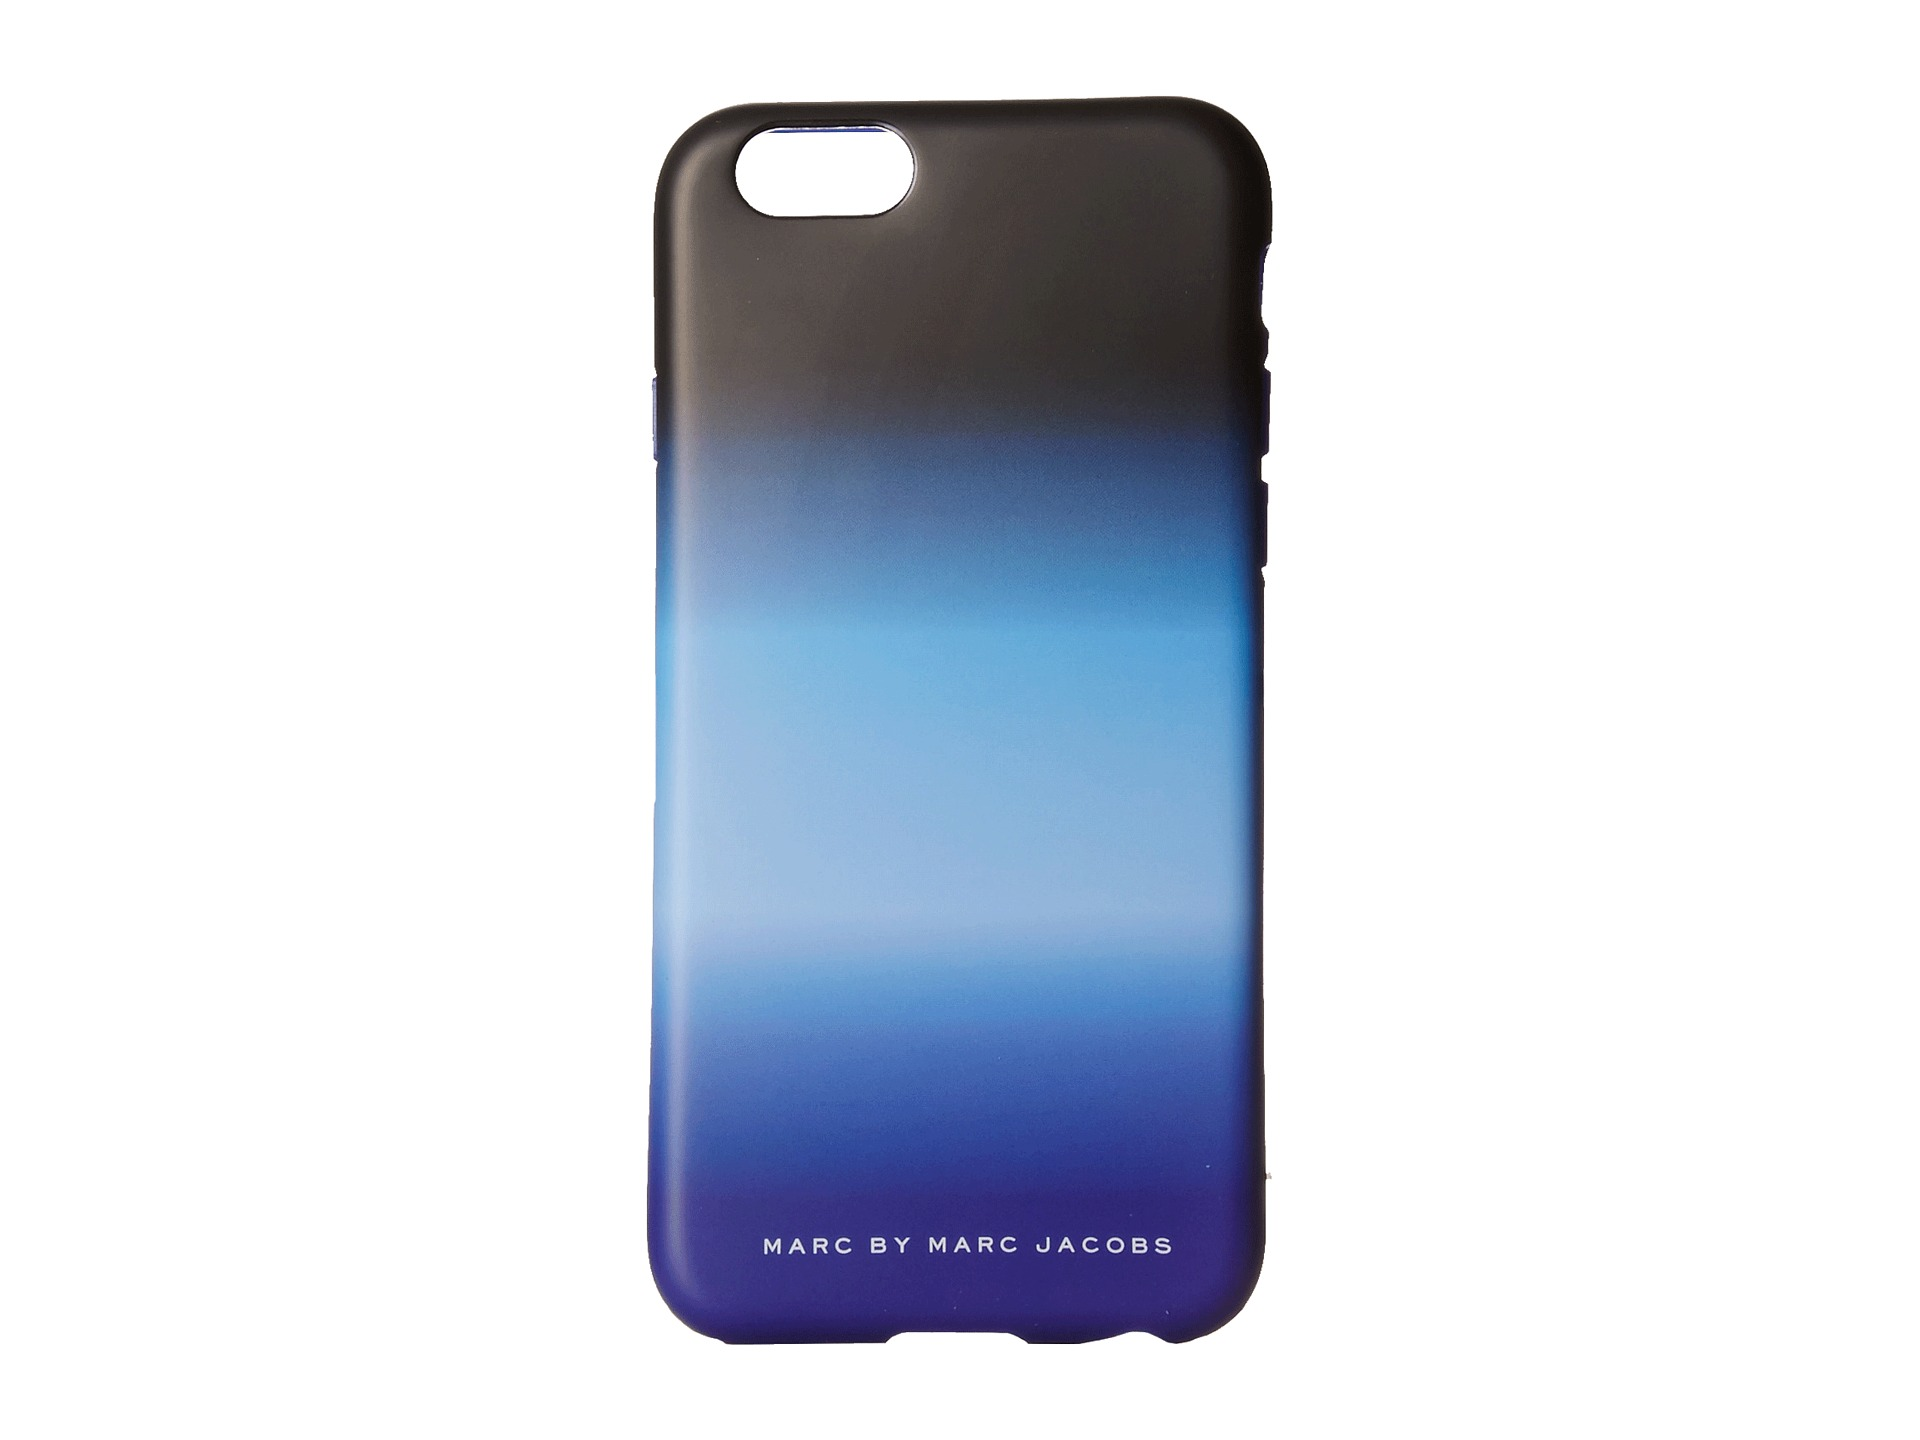 marc by marc jacobs ombre phone case for iphone 6. Black Bedroom Furniture Sets. Home Design Ideas